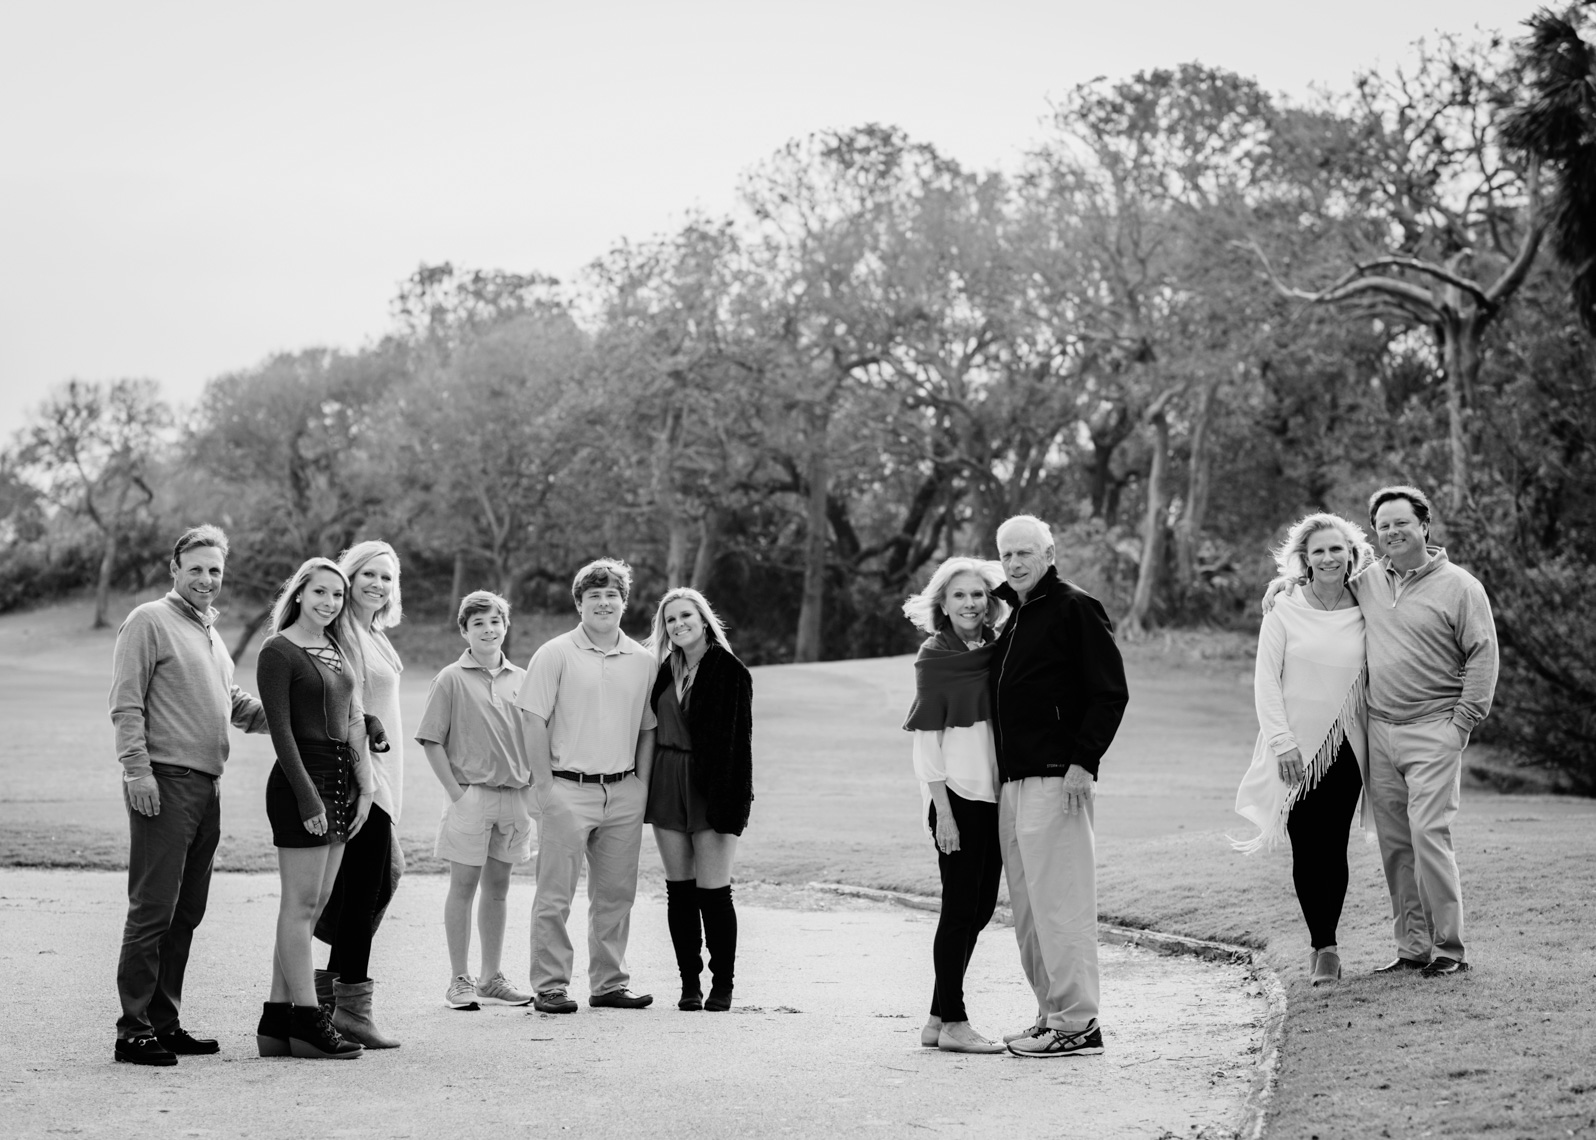 Family-Portrait-Photography-Amelia-Island-127